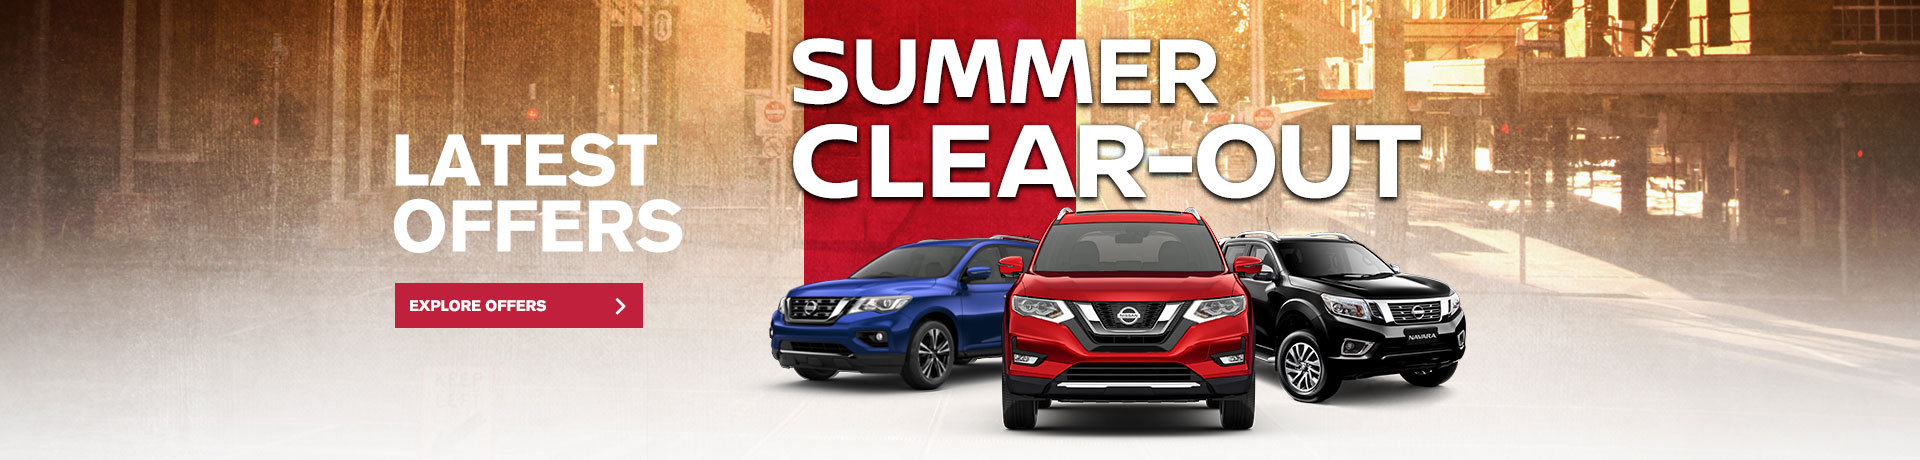 Nissan - National Offer- Summer Clear-Out